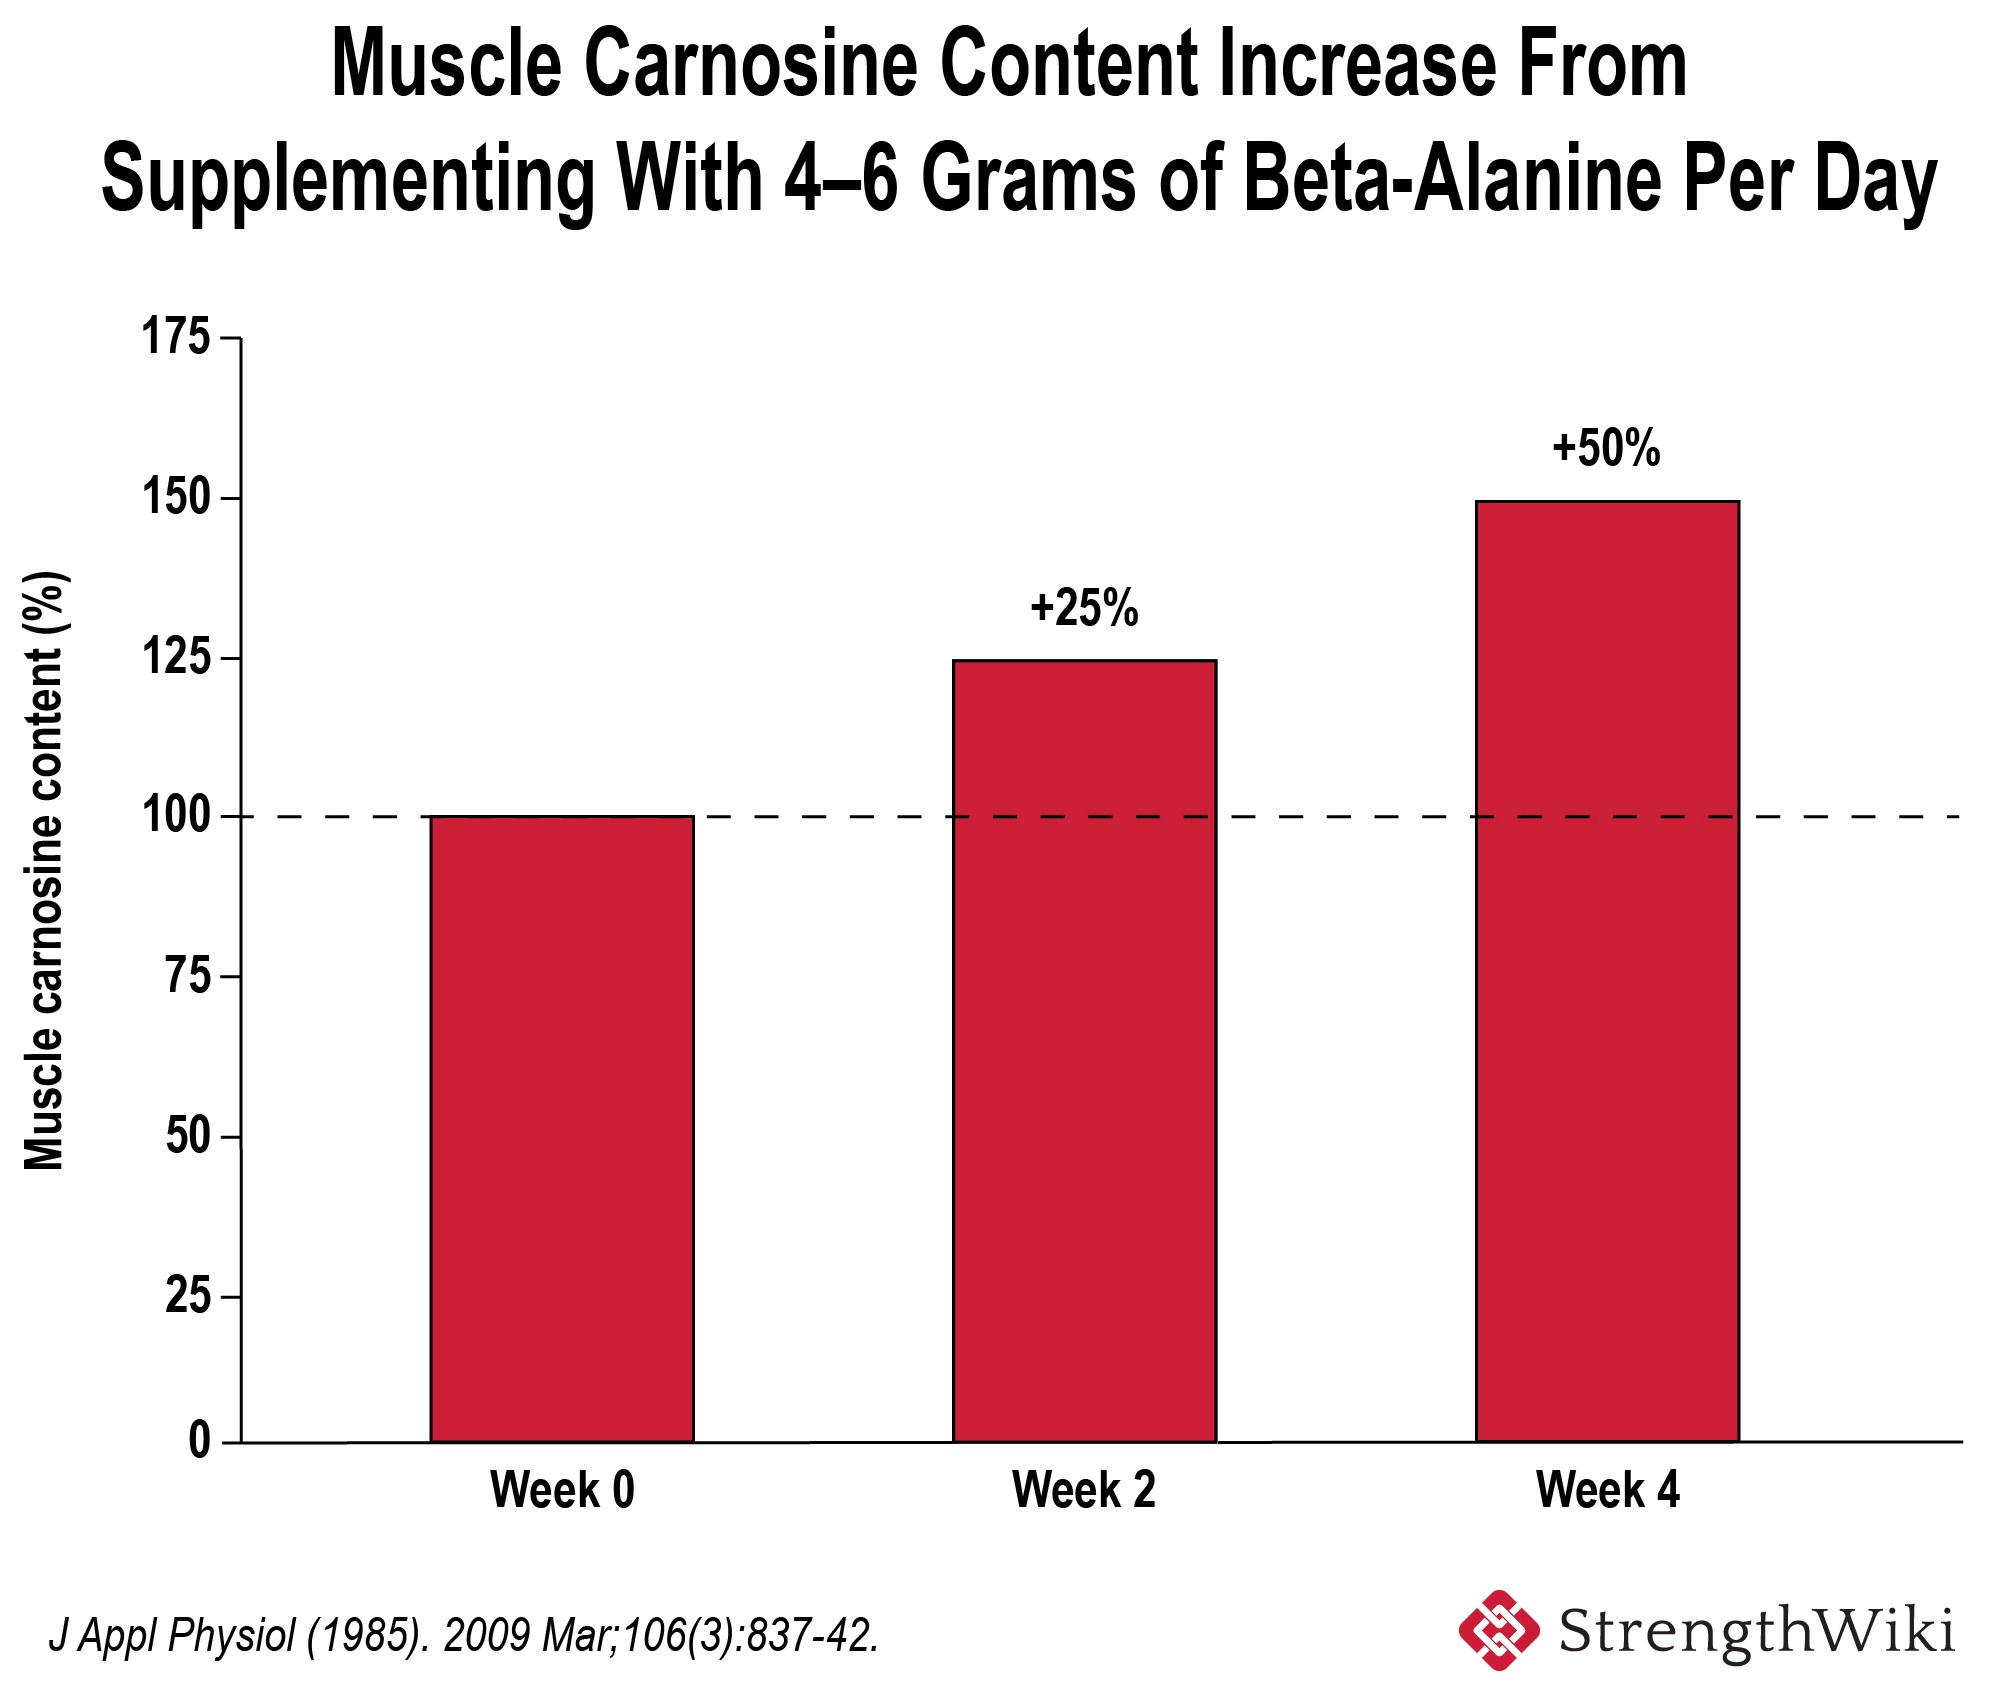 Carnosine increase after loading with beta-alanine